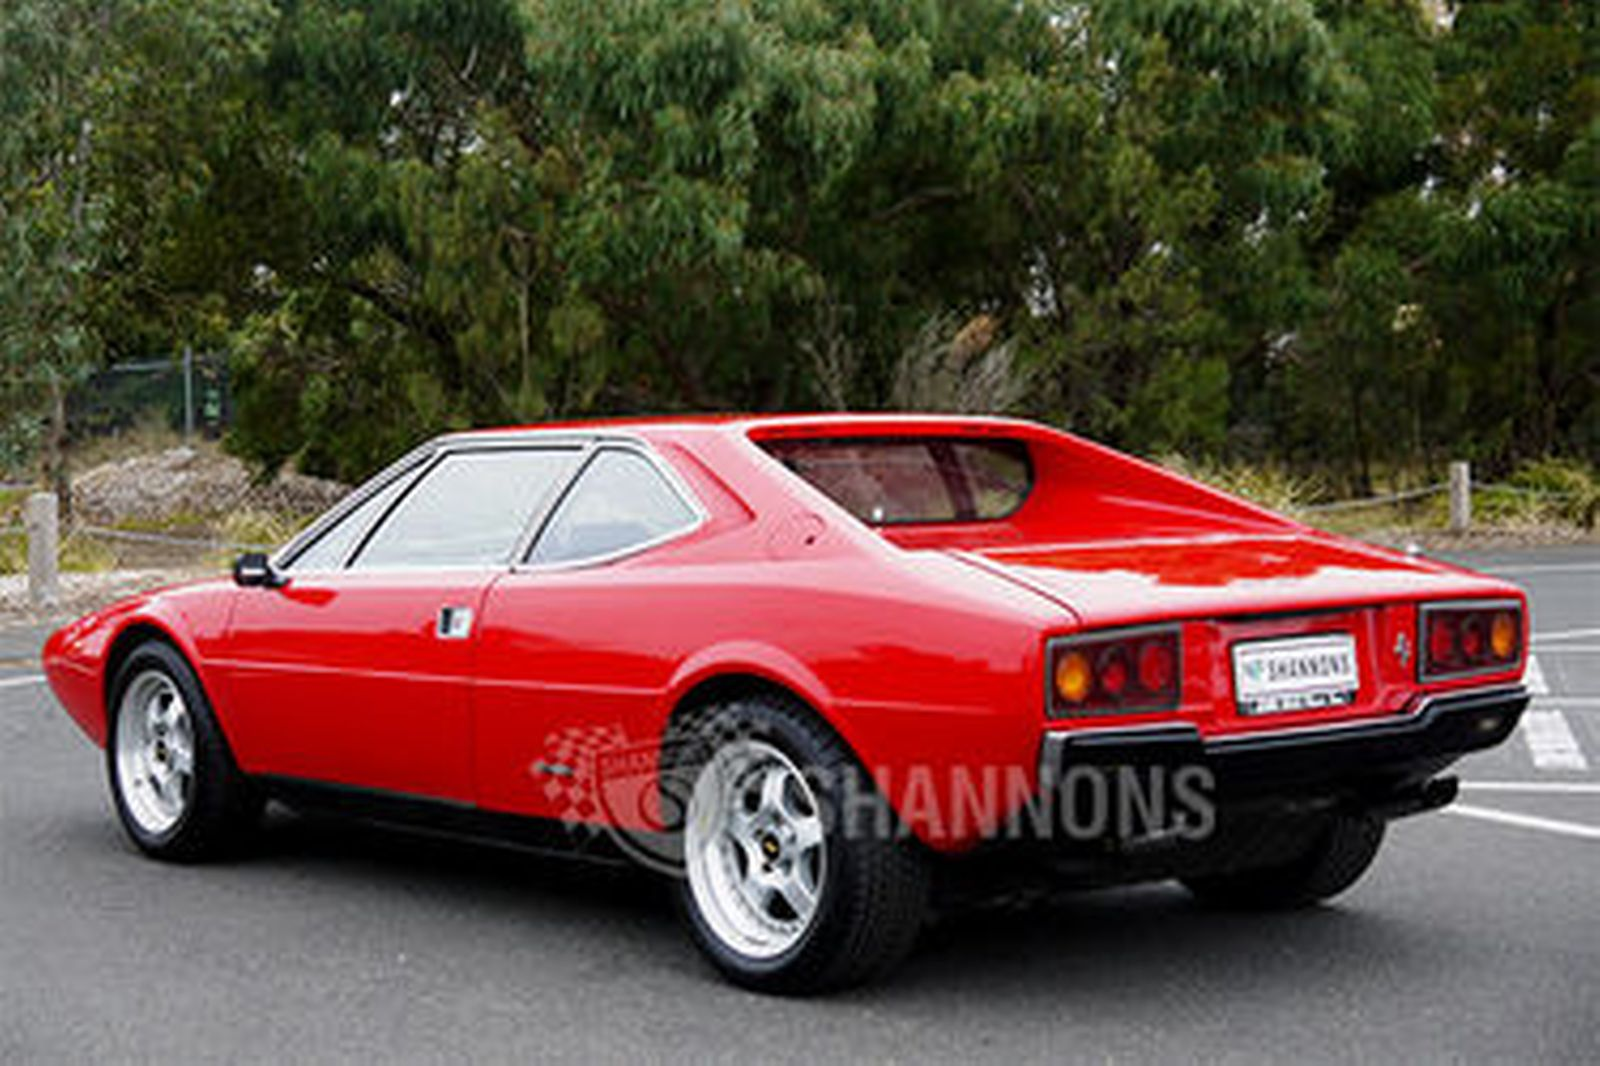 sold ferrari dino 308 gt4 coupe auctions lot 35 shannons. Black Bedroom Furniture Sets. Home Design Ideas